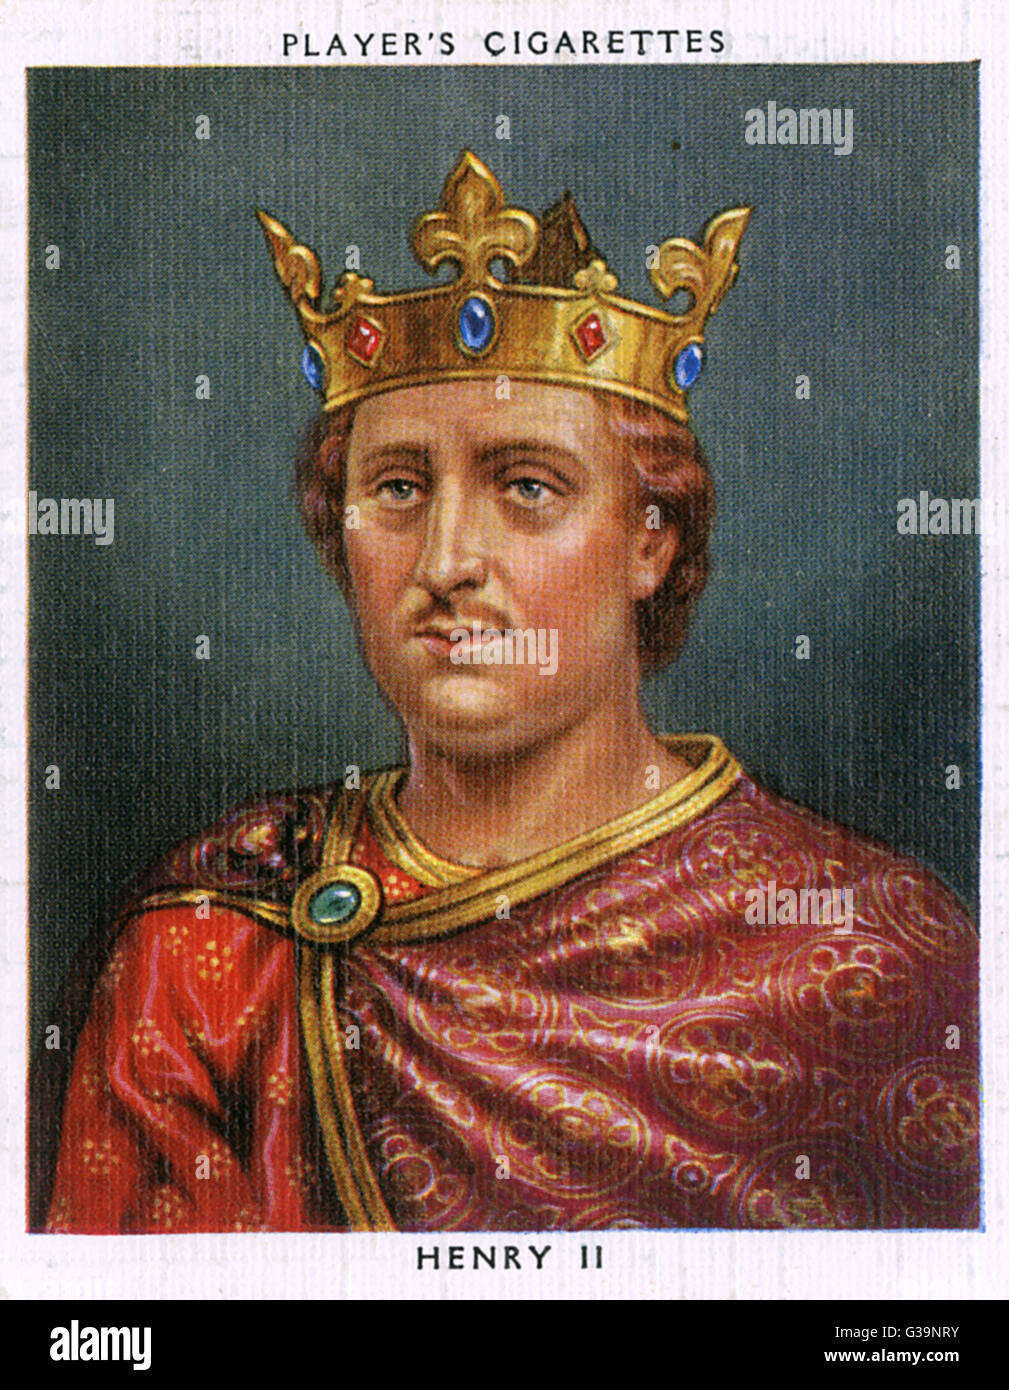 HENRY II (1133 - 1189) Reigned 1154 - 1189 - Stock Image